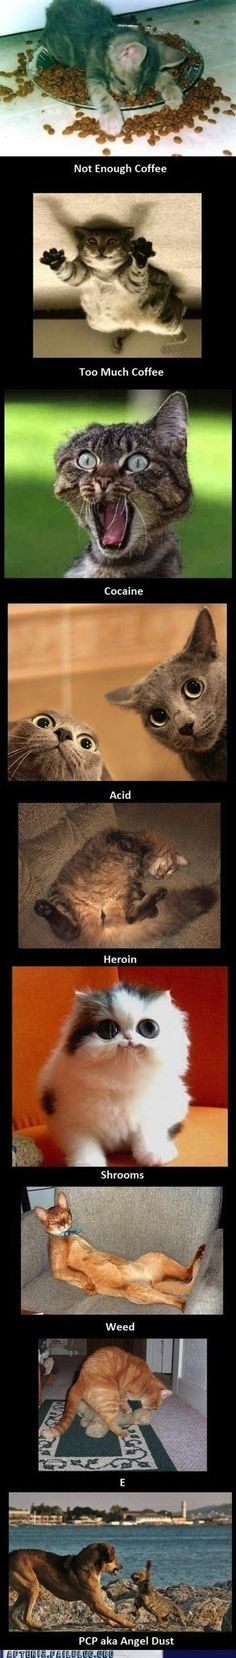 Animals on drugs lol, how true would this be?!